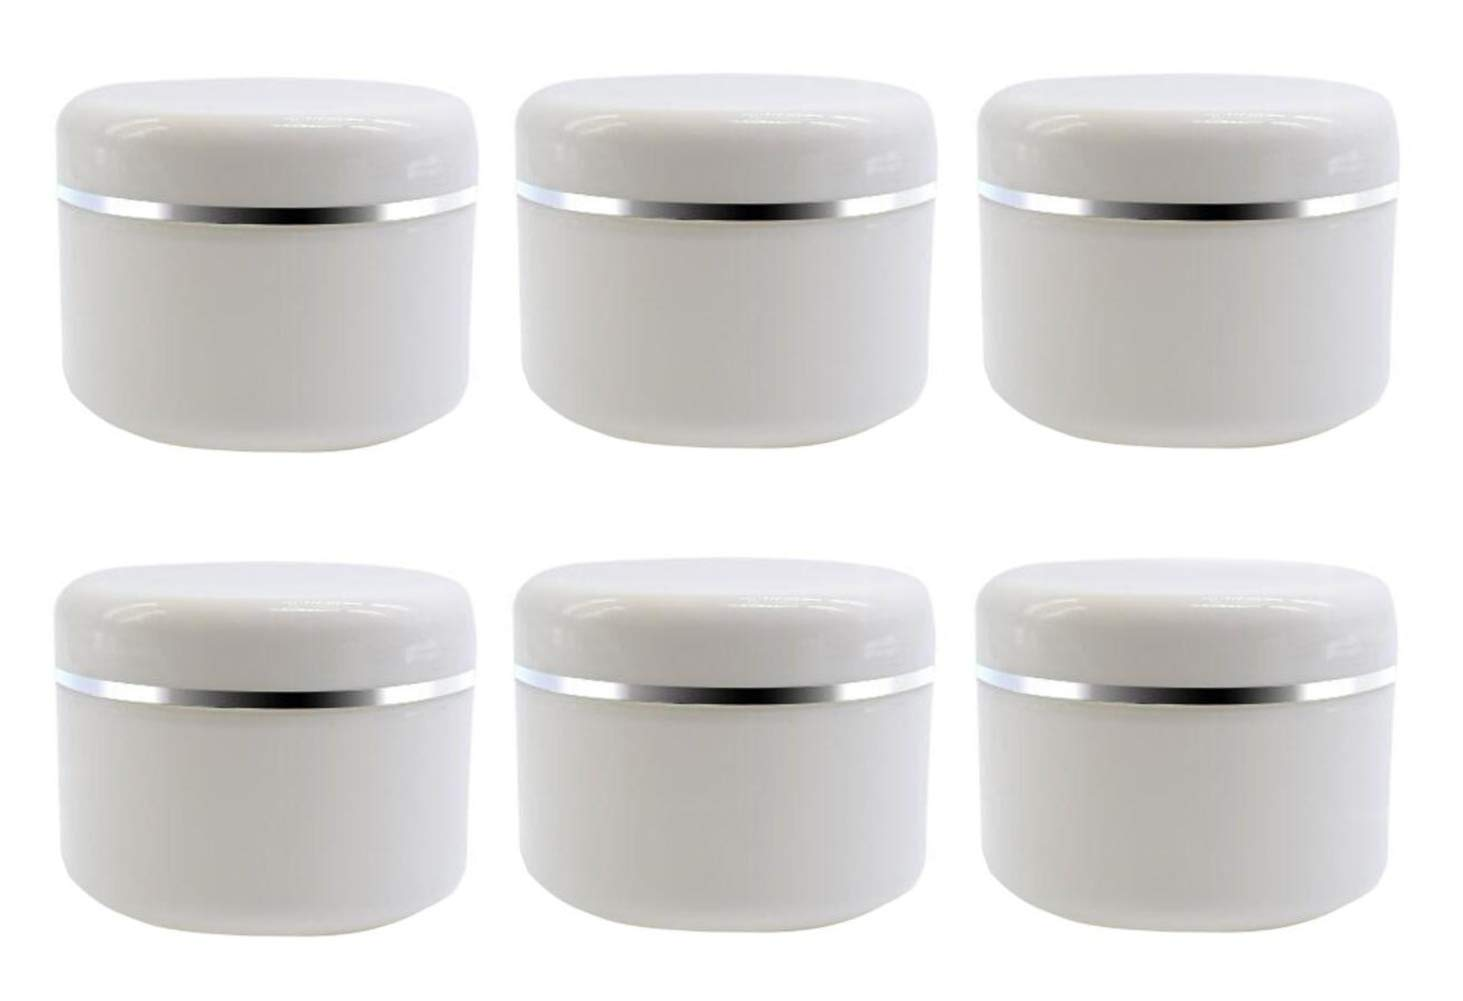 8 Oz 250ml White Plastic Cosmetic Jars with Inner Liners and Dome Lids Refillable Make-up Cosmetic Containers Pot Case for Scrubs Oils Salves Creams Lip Balm Lotions Nail Accessories Pack of 6